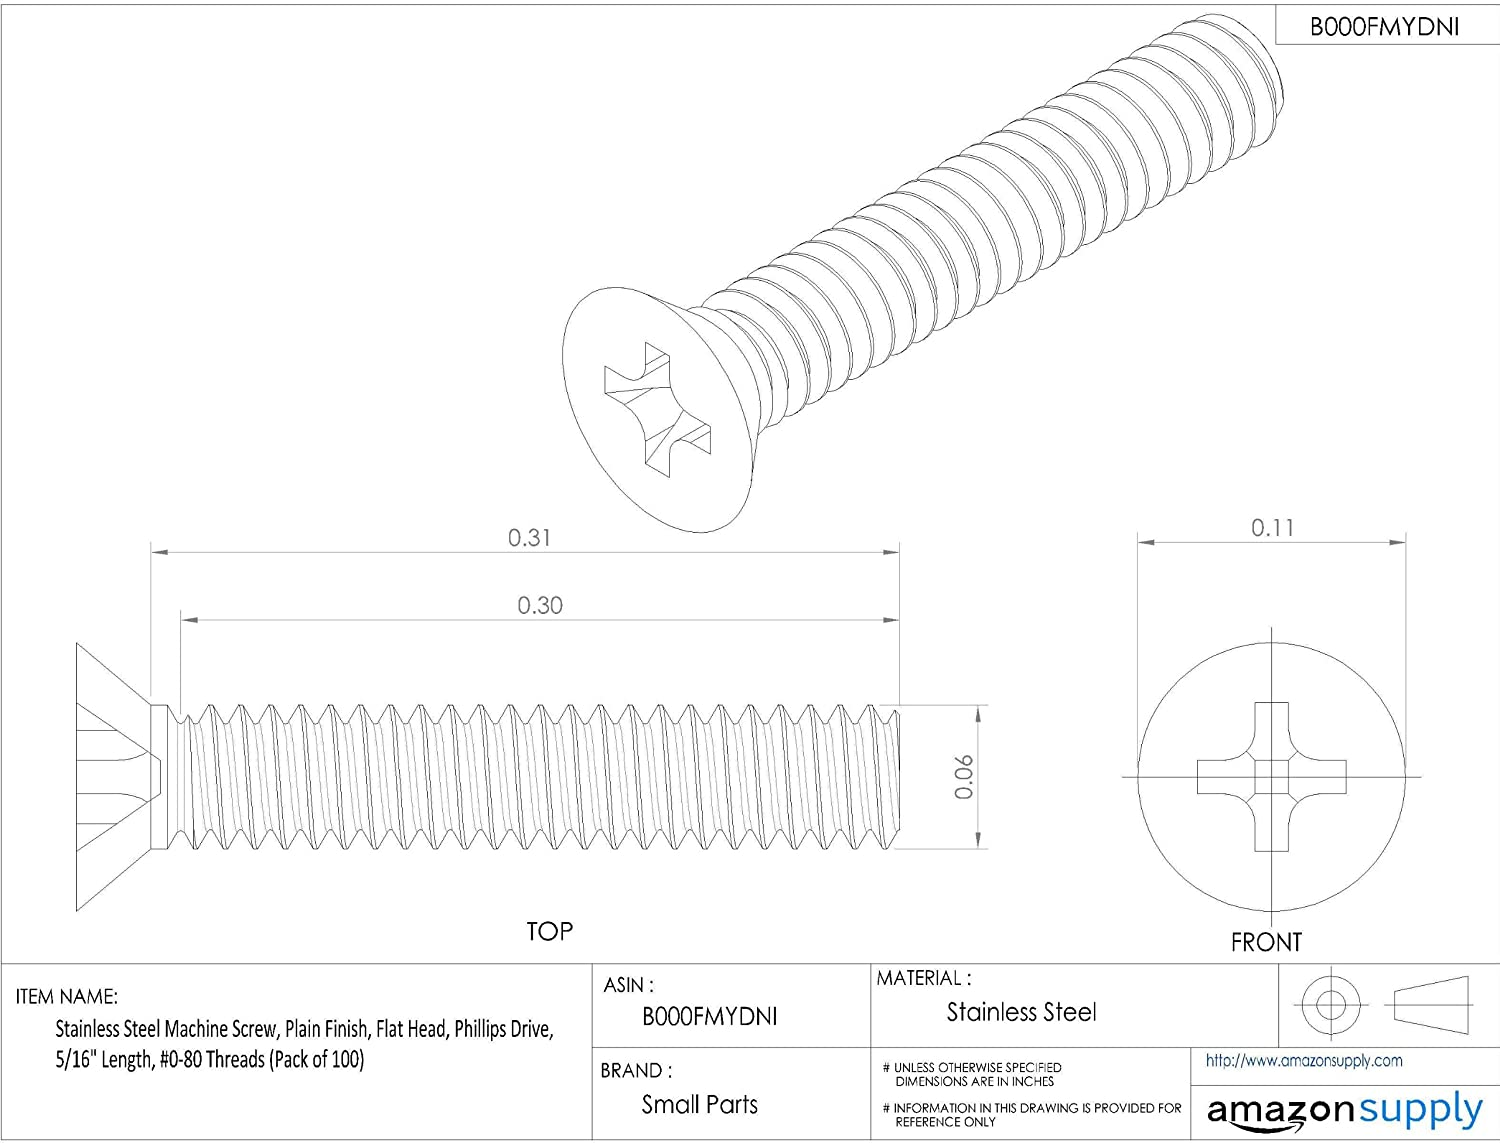 Plain Finish Stainless Steel Machine Screw Pack of 100 Flat Head 5//16 Length 5//16 Length Small Parts B000FMYDNI Phillips Drive #0-80 Threads